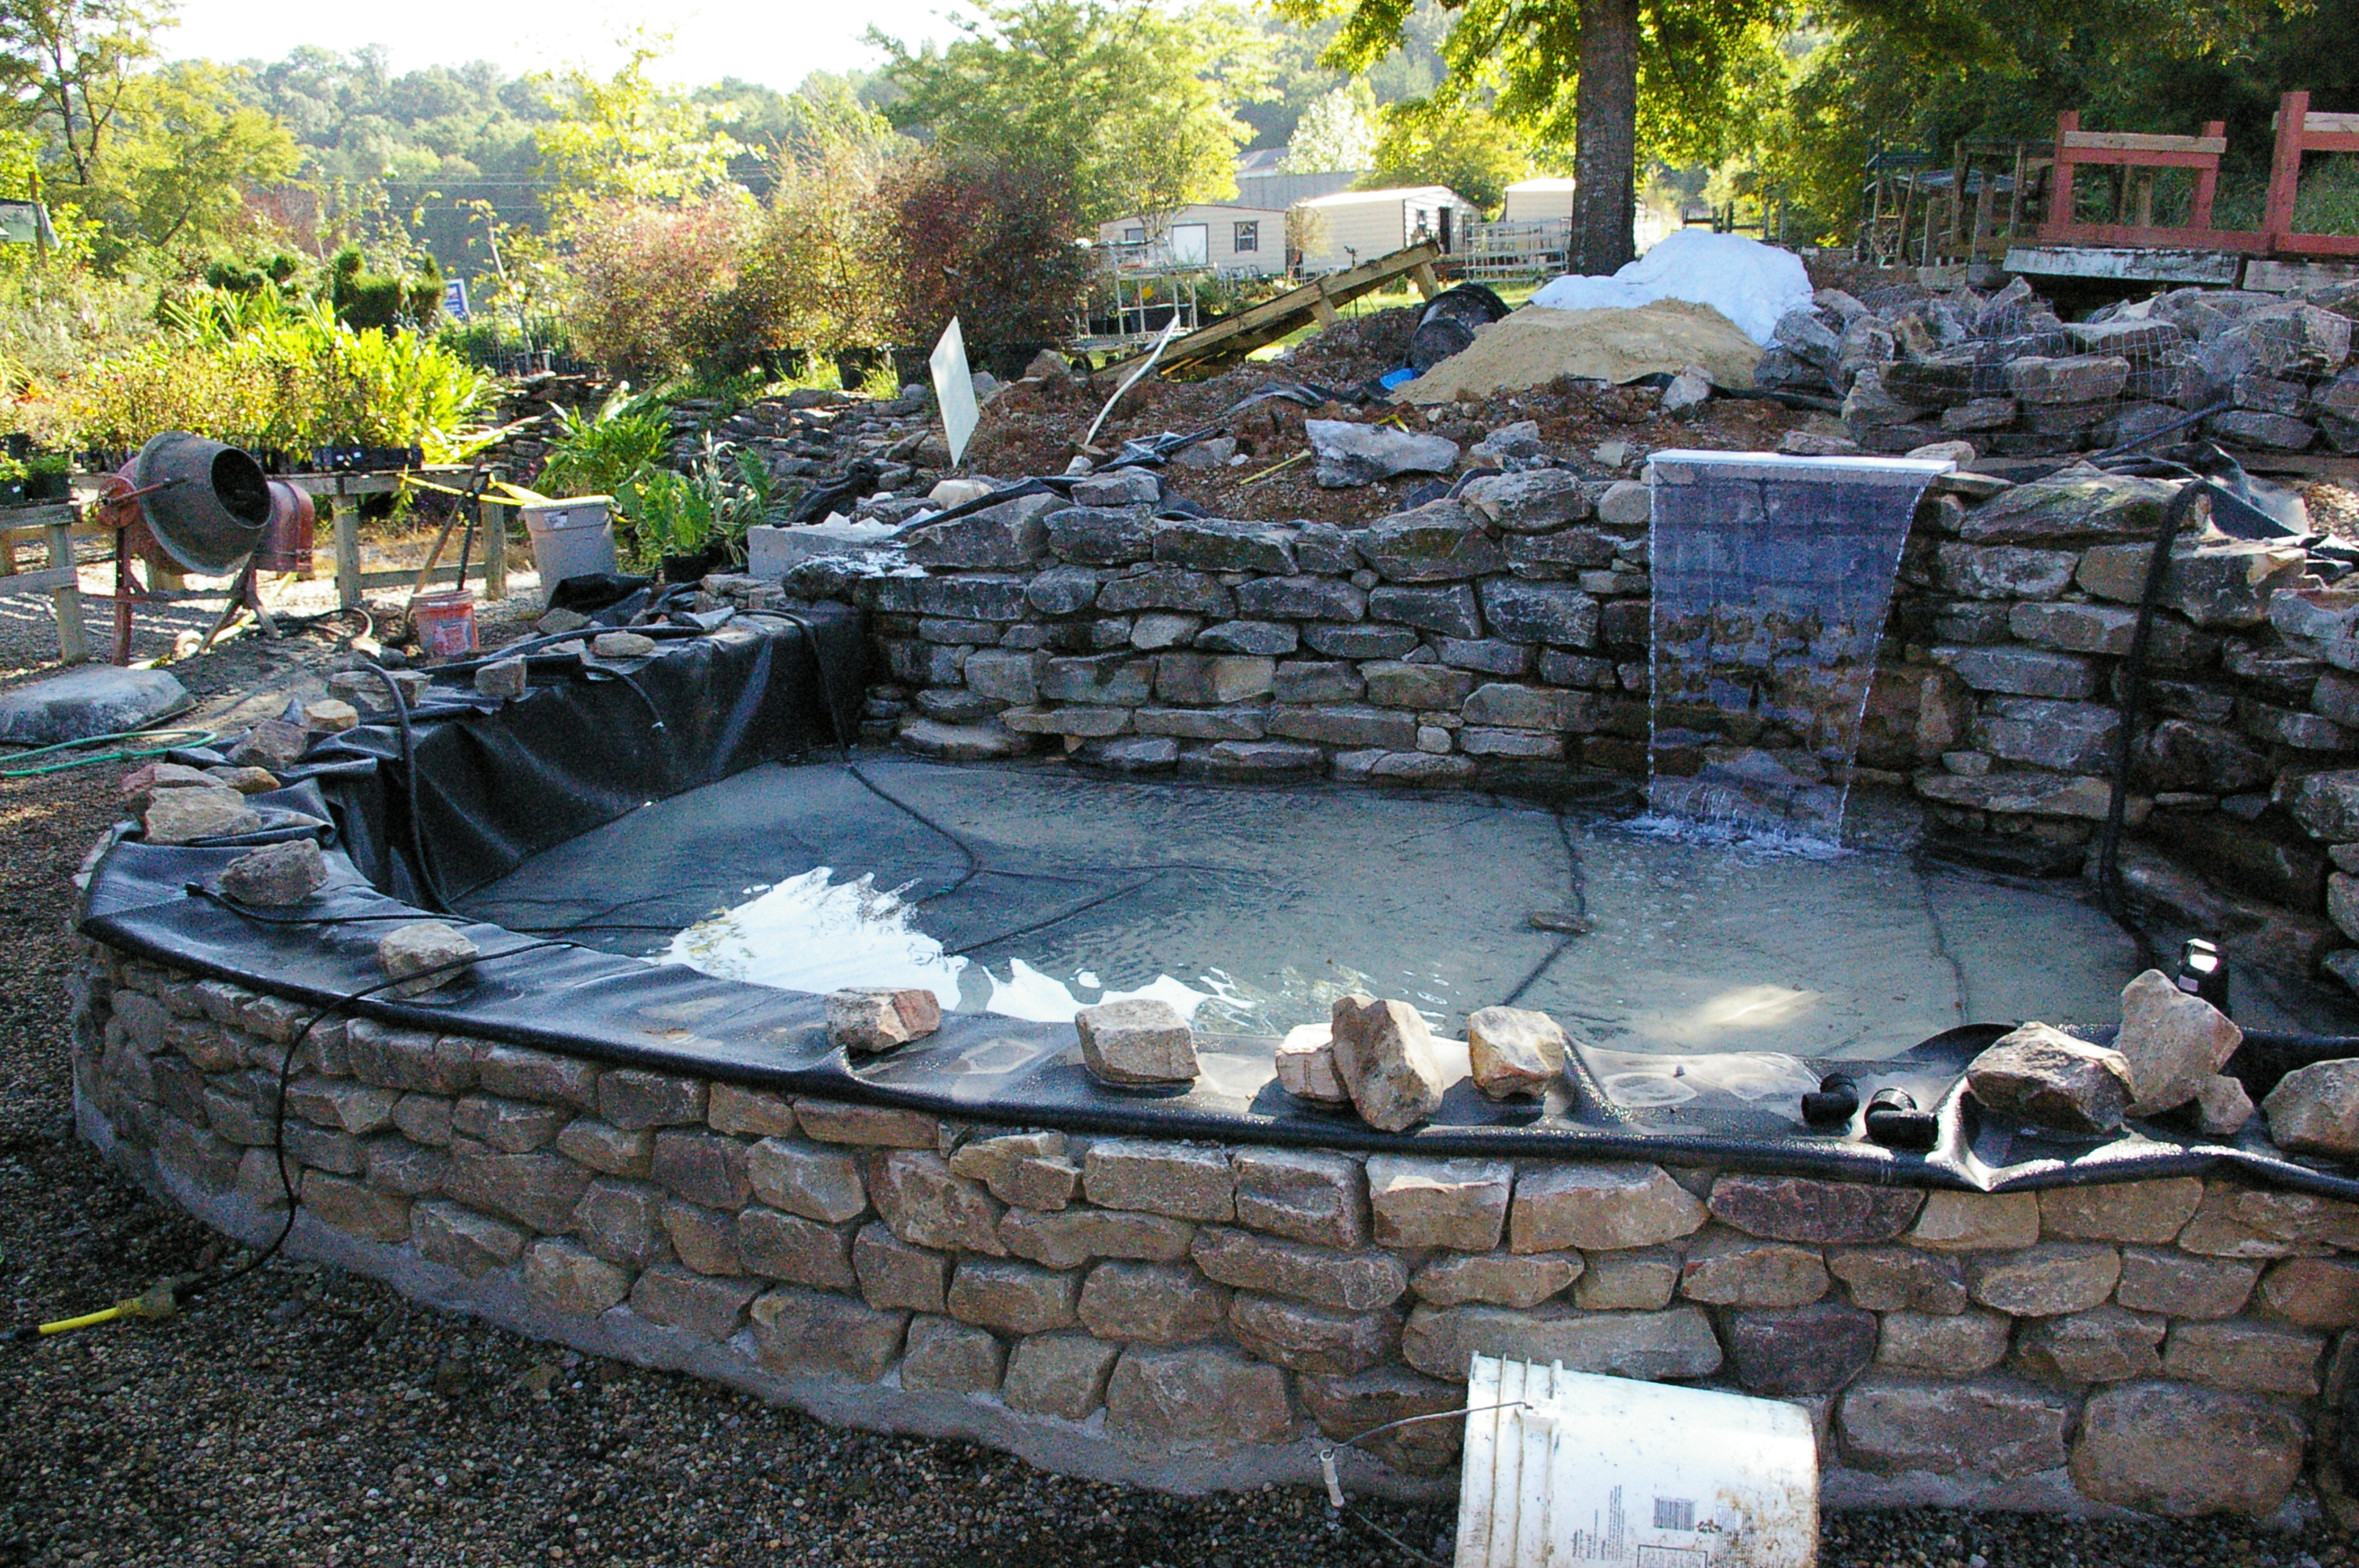 Stylish home design ideas march 2014 for Building a small pond